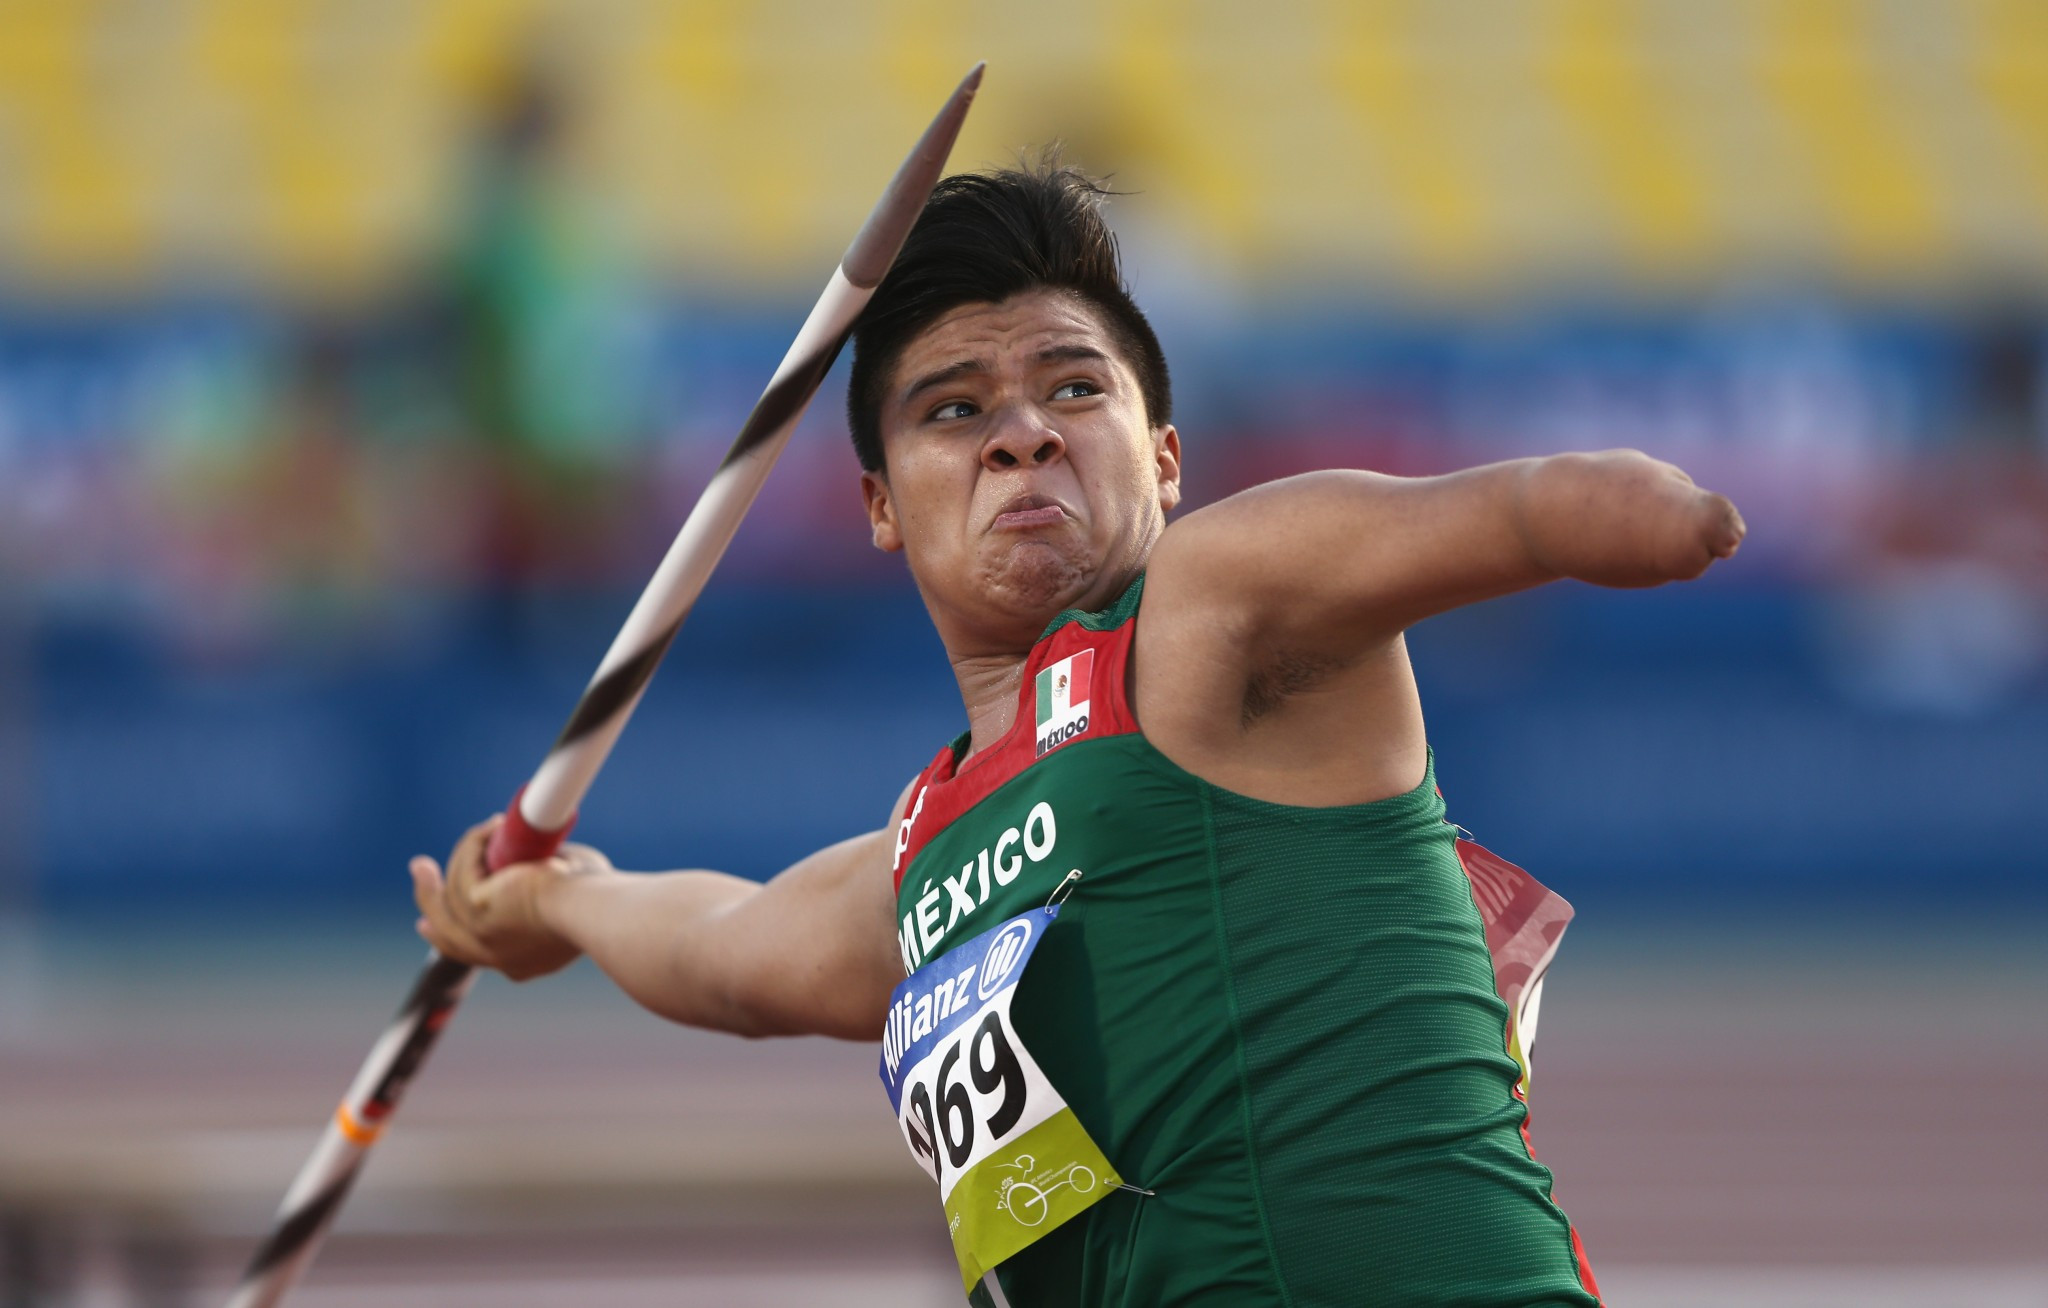 Parapan champion Buenaventura wins World Para Athletics Junior Championships gold on final day